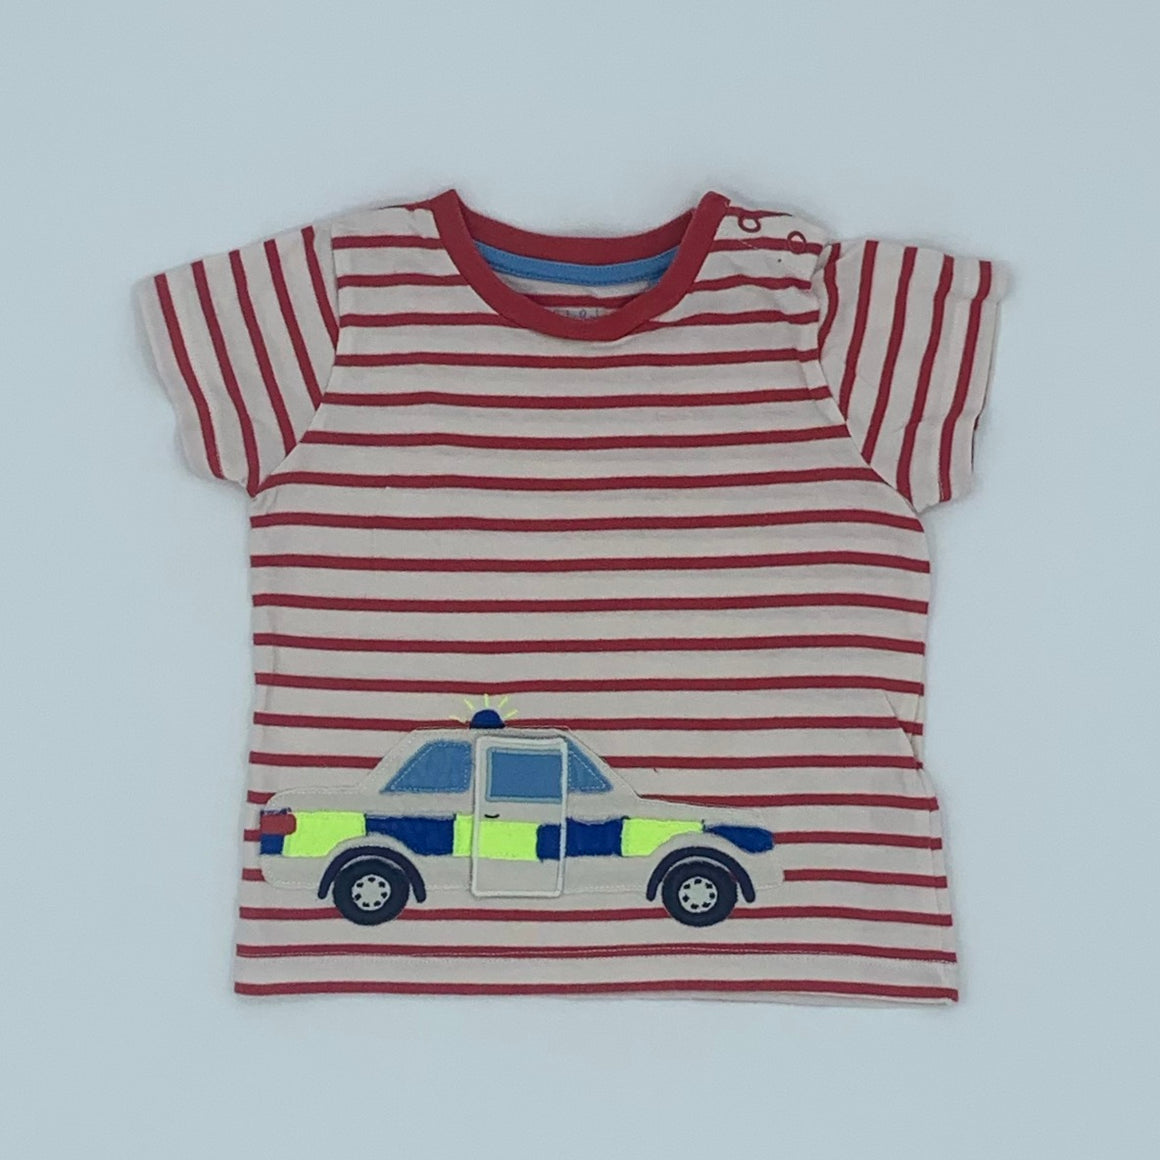 Gently Worn Boden striped police car t-shirt size 12-18 months